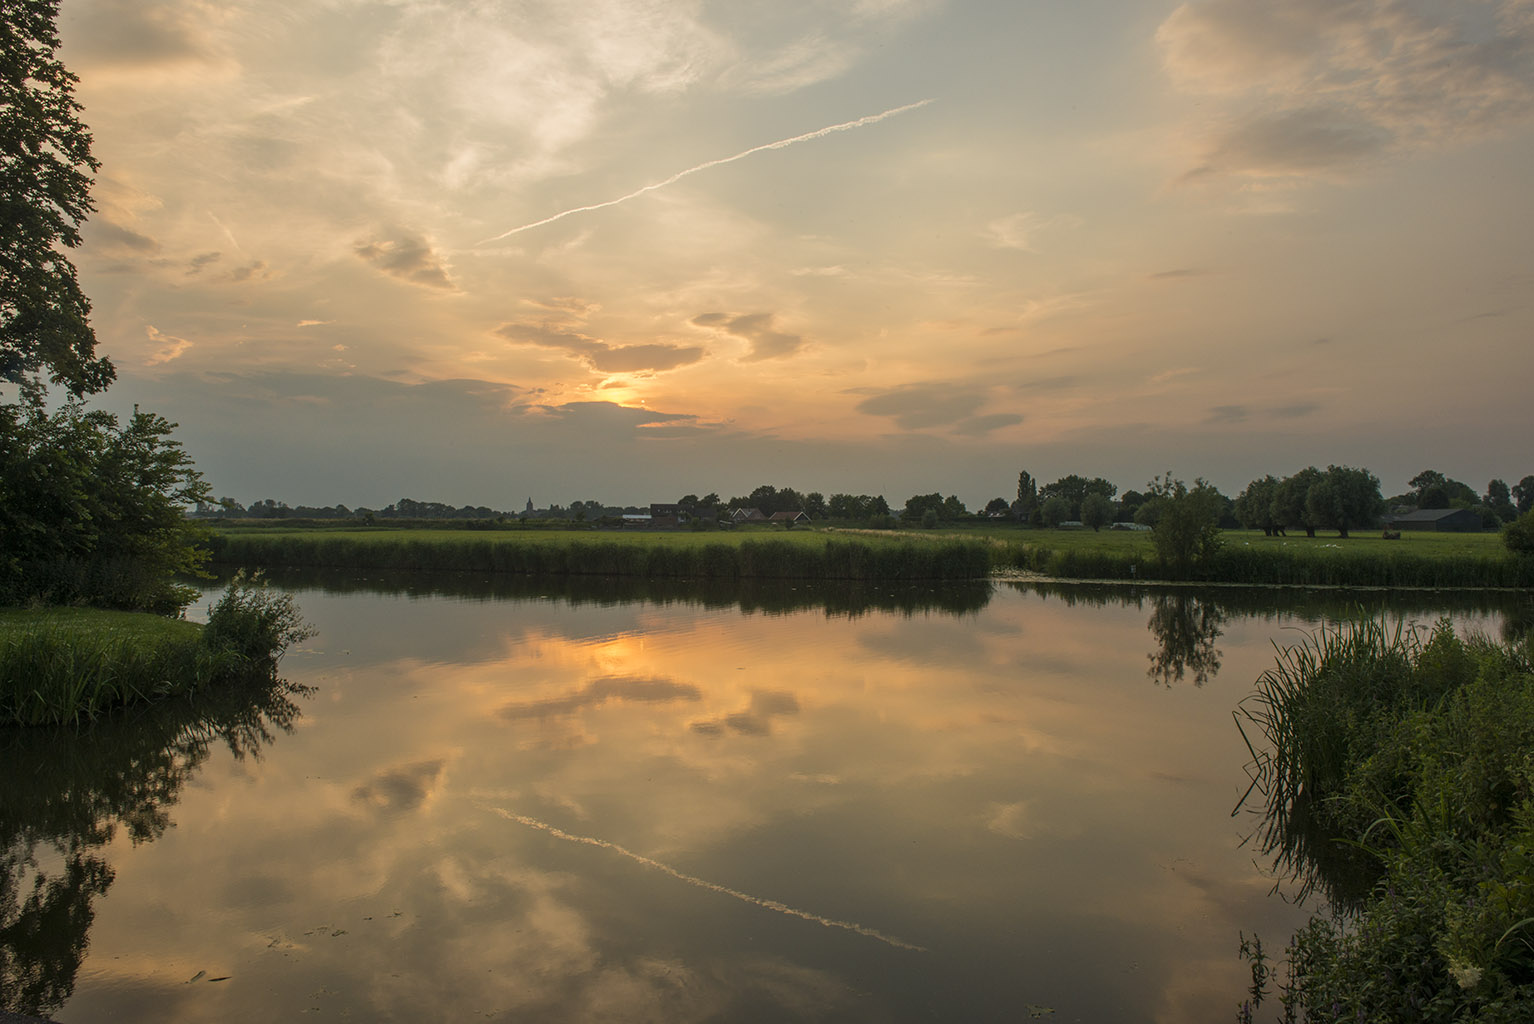 Around the Linge river, The Netherlands